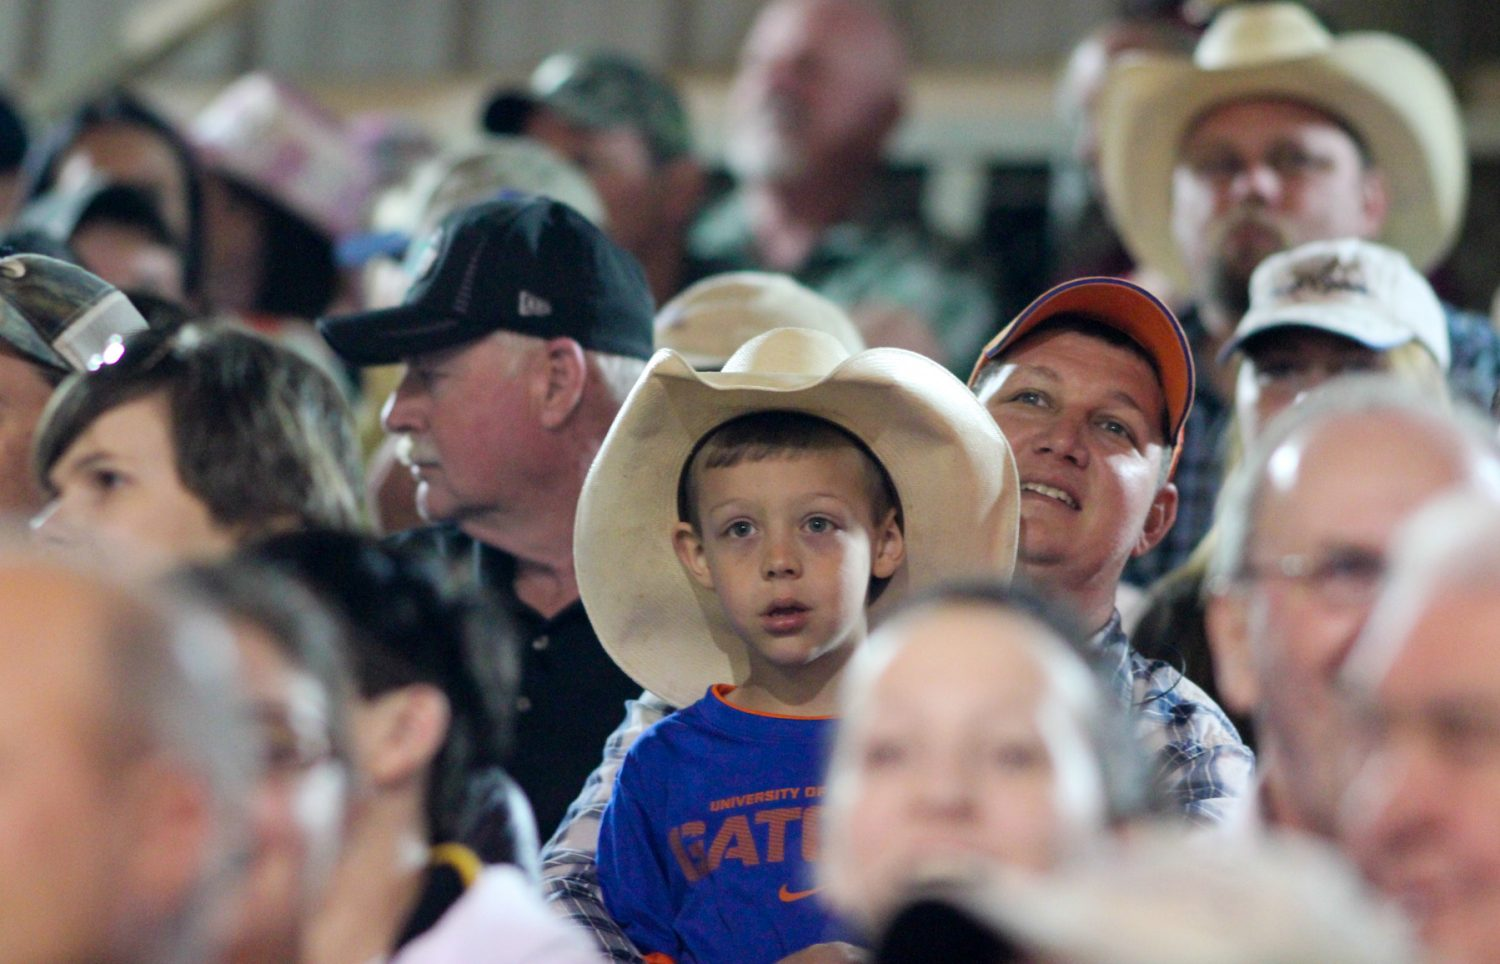 Fans of the rodeo look on as events unfold at the Ocala Pro Rodeo on Saturday night, March 22, 2014.